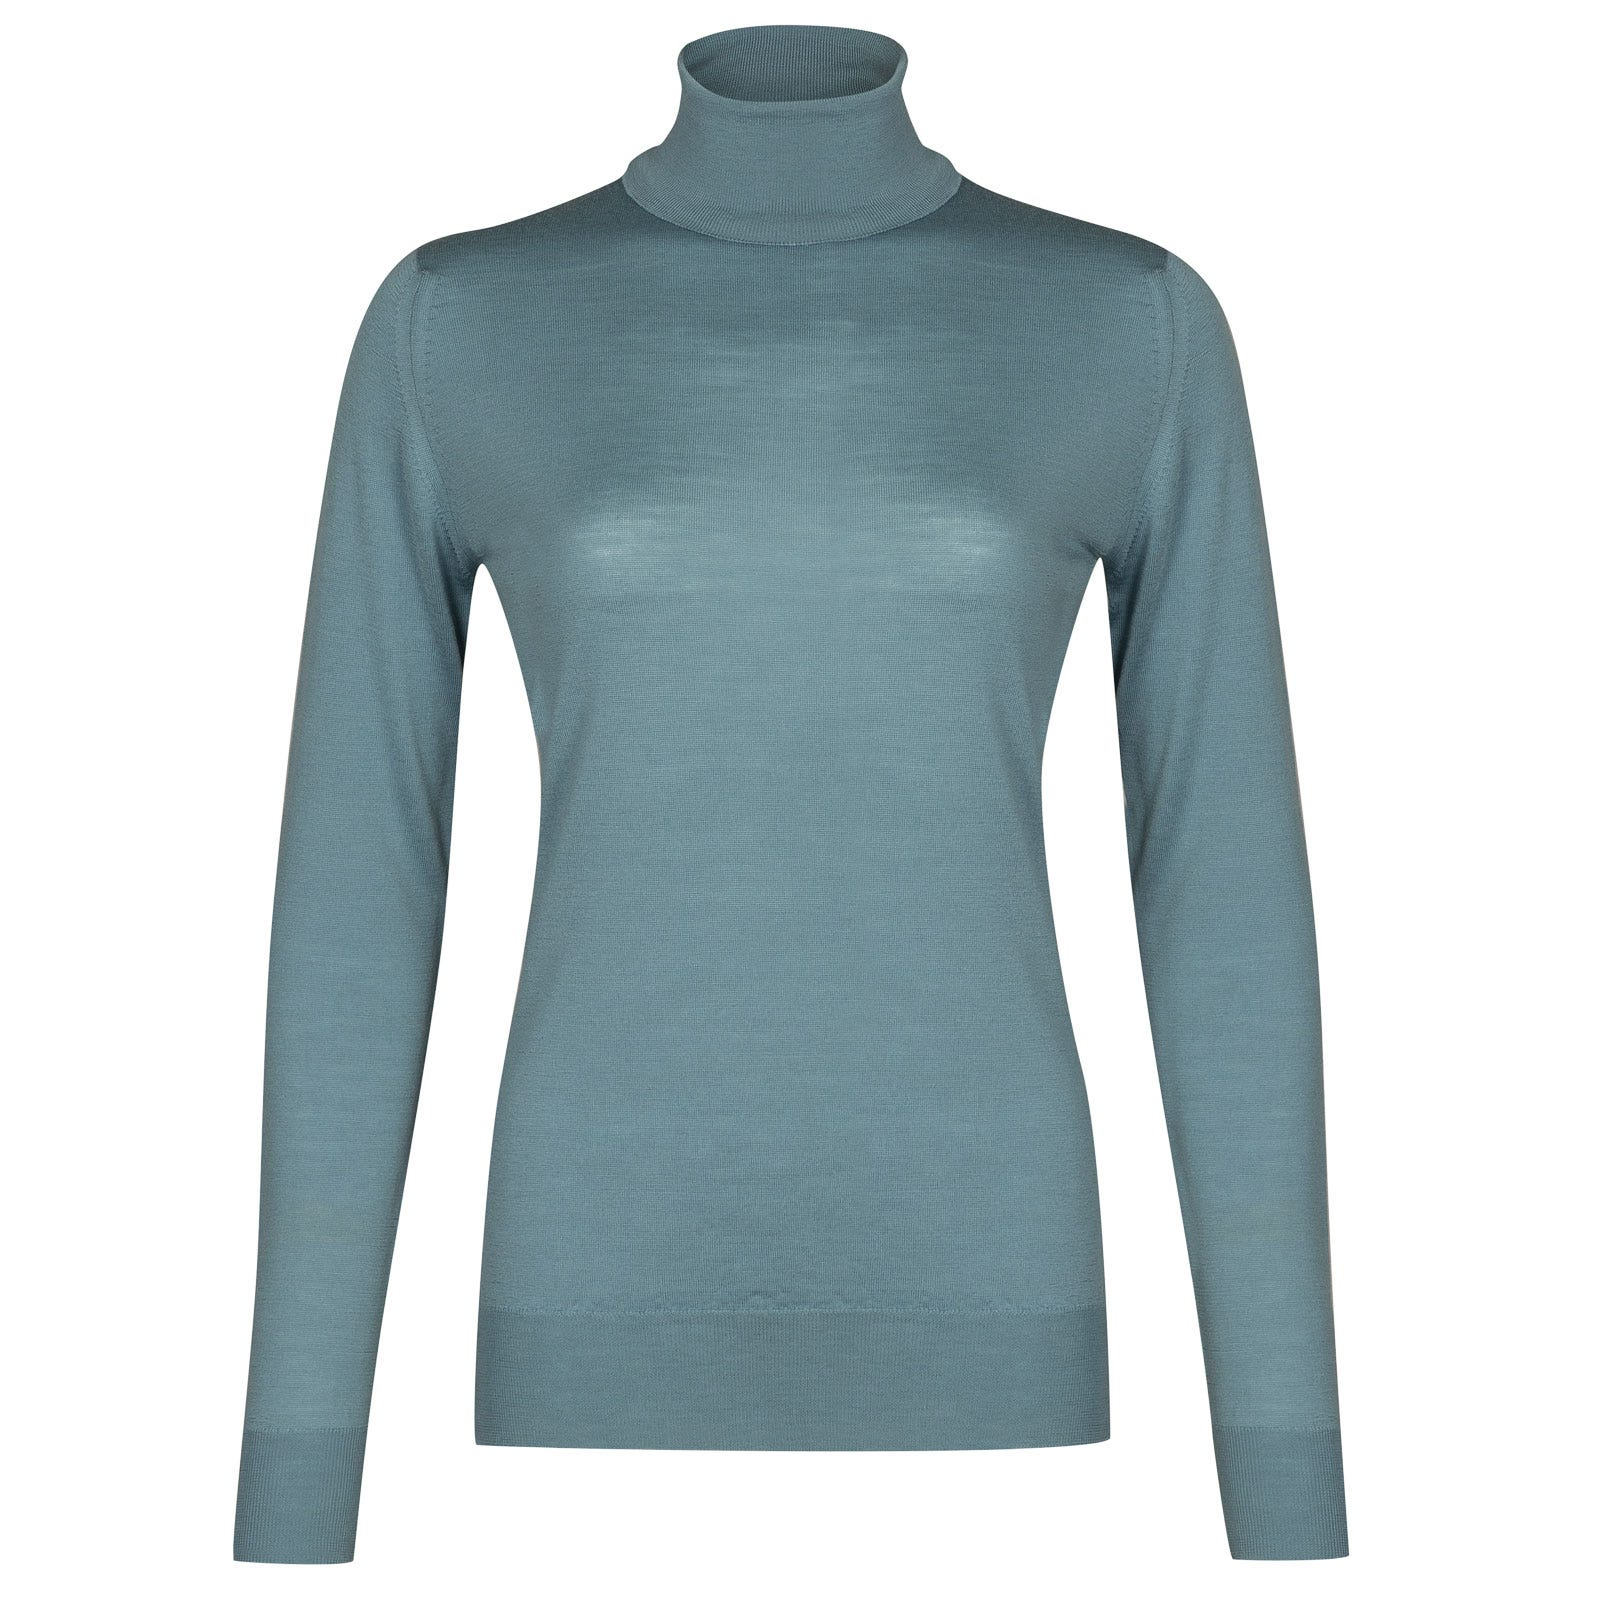 John Smedley Catkin Merino Wool Sweater in Summit Blue-XL